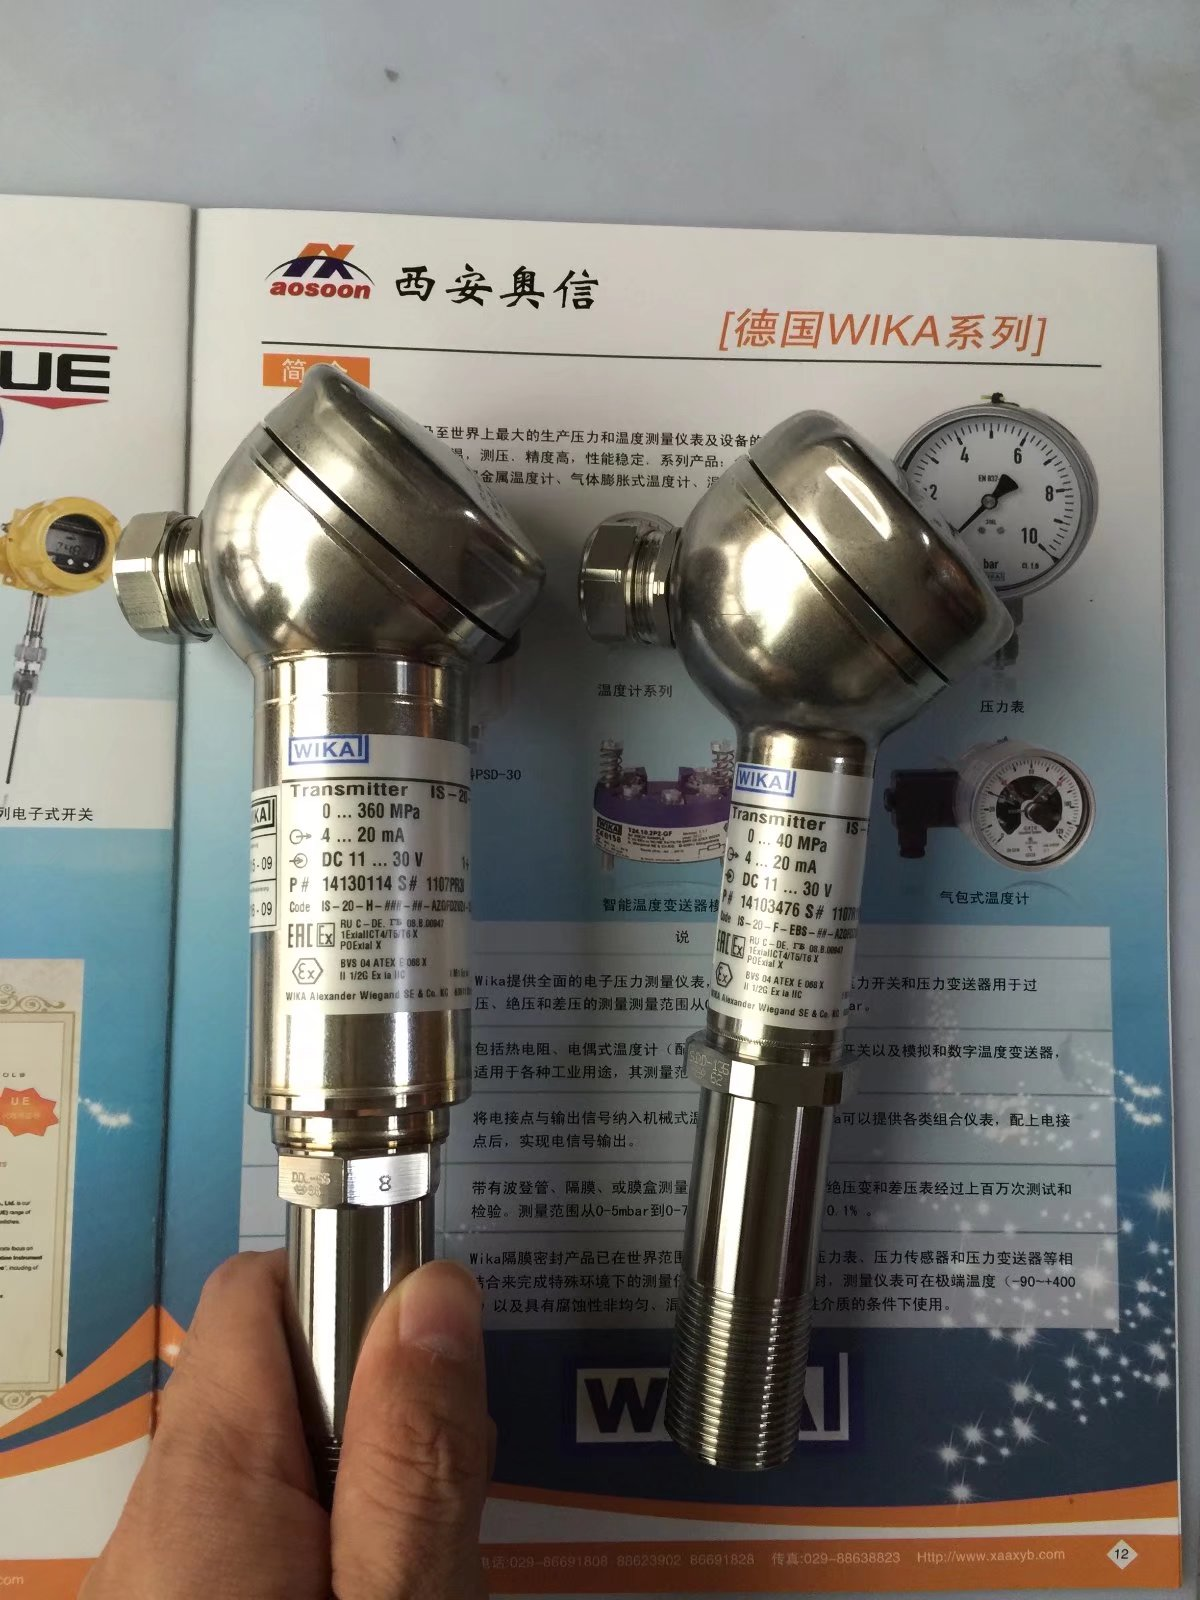 wika防爆压力变送器 IS-20-F IS-20-S IS-20-H